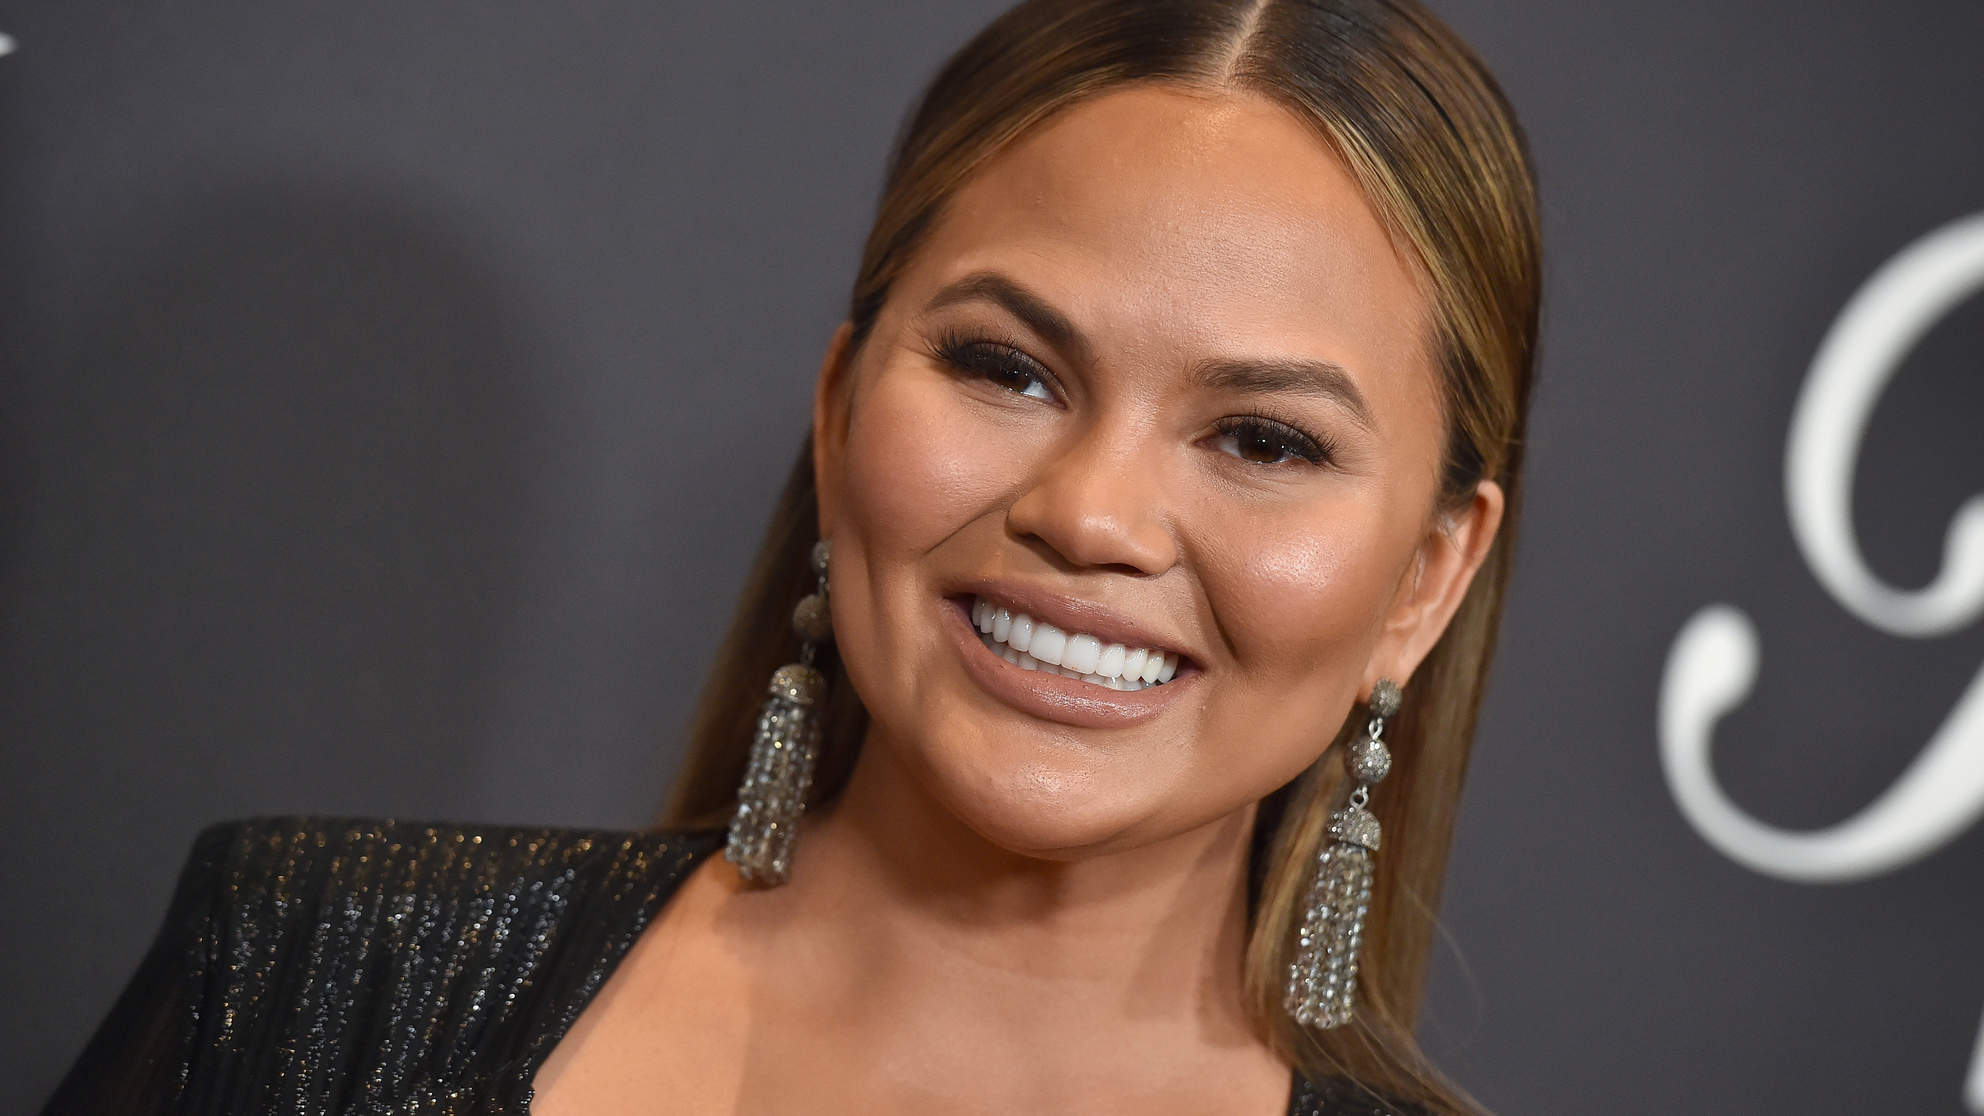 Breastfeeding in Bali! Chrissy Teigen Lounges in the Nude While Nursing Baby Miles on Vacation